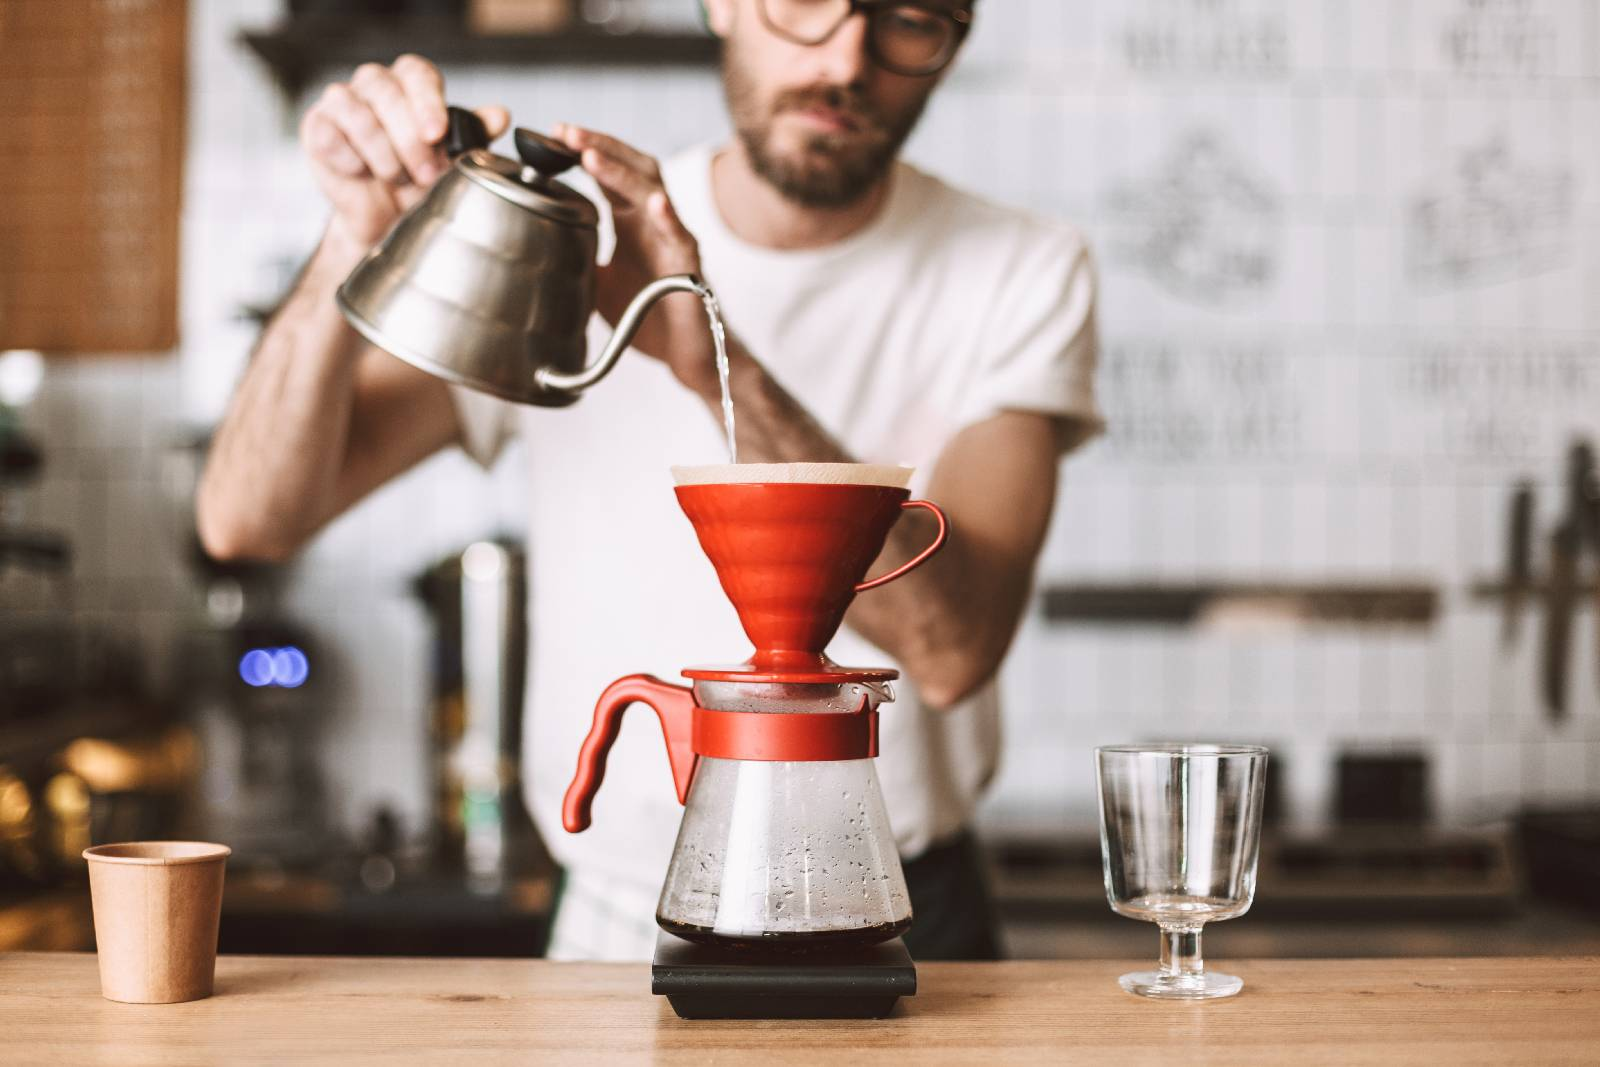 5 Ways To Make Coffee At Home - Pour over coffee